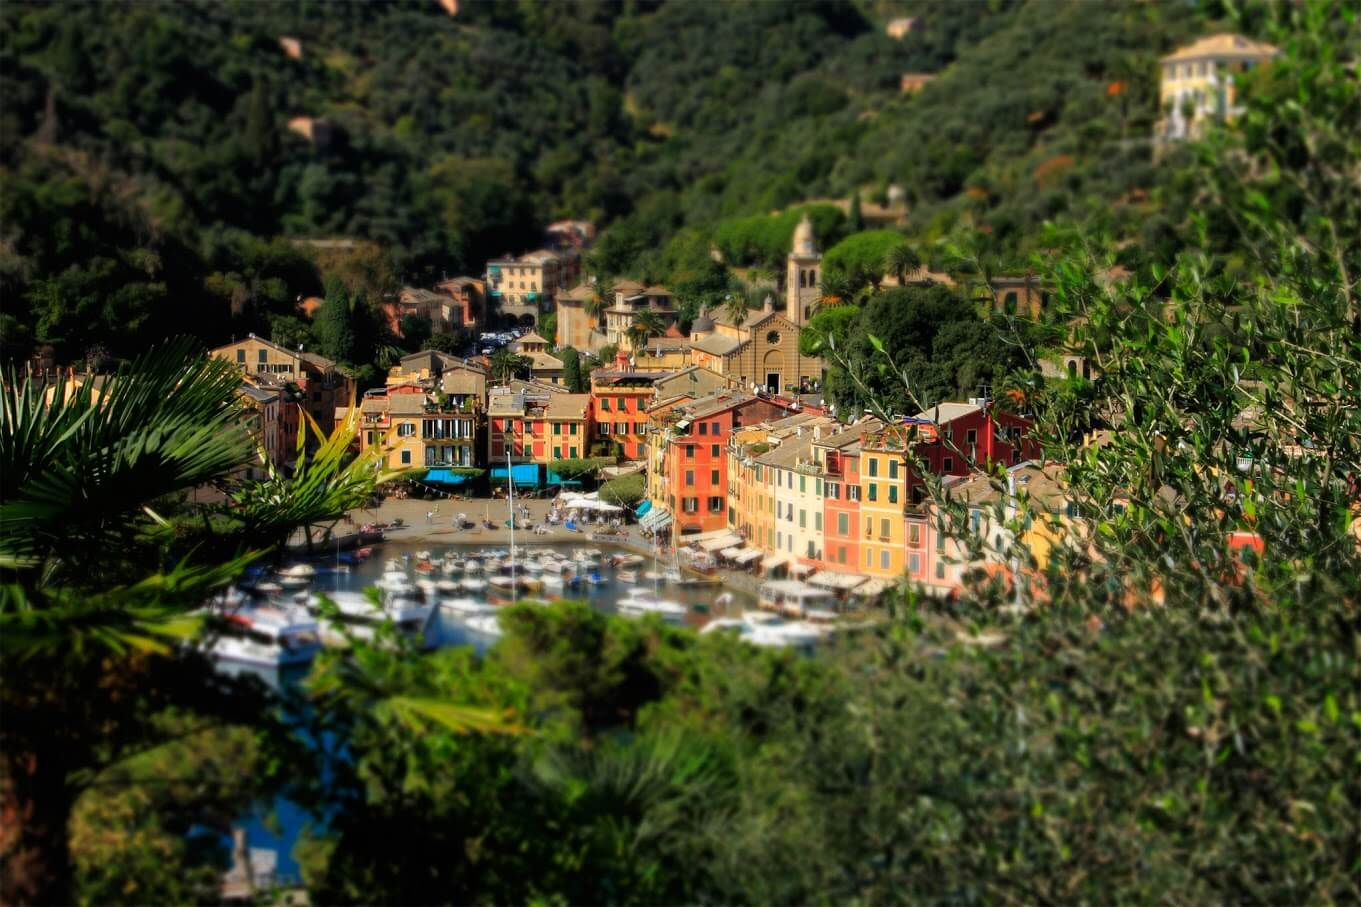 Portofino tilt shifted